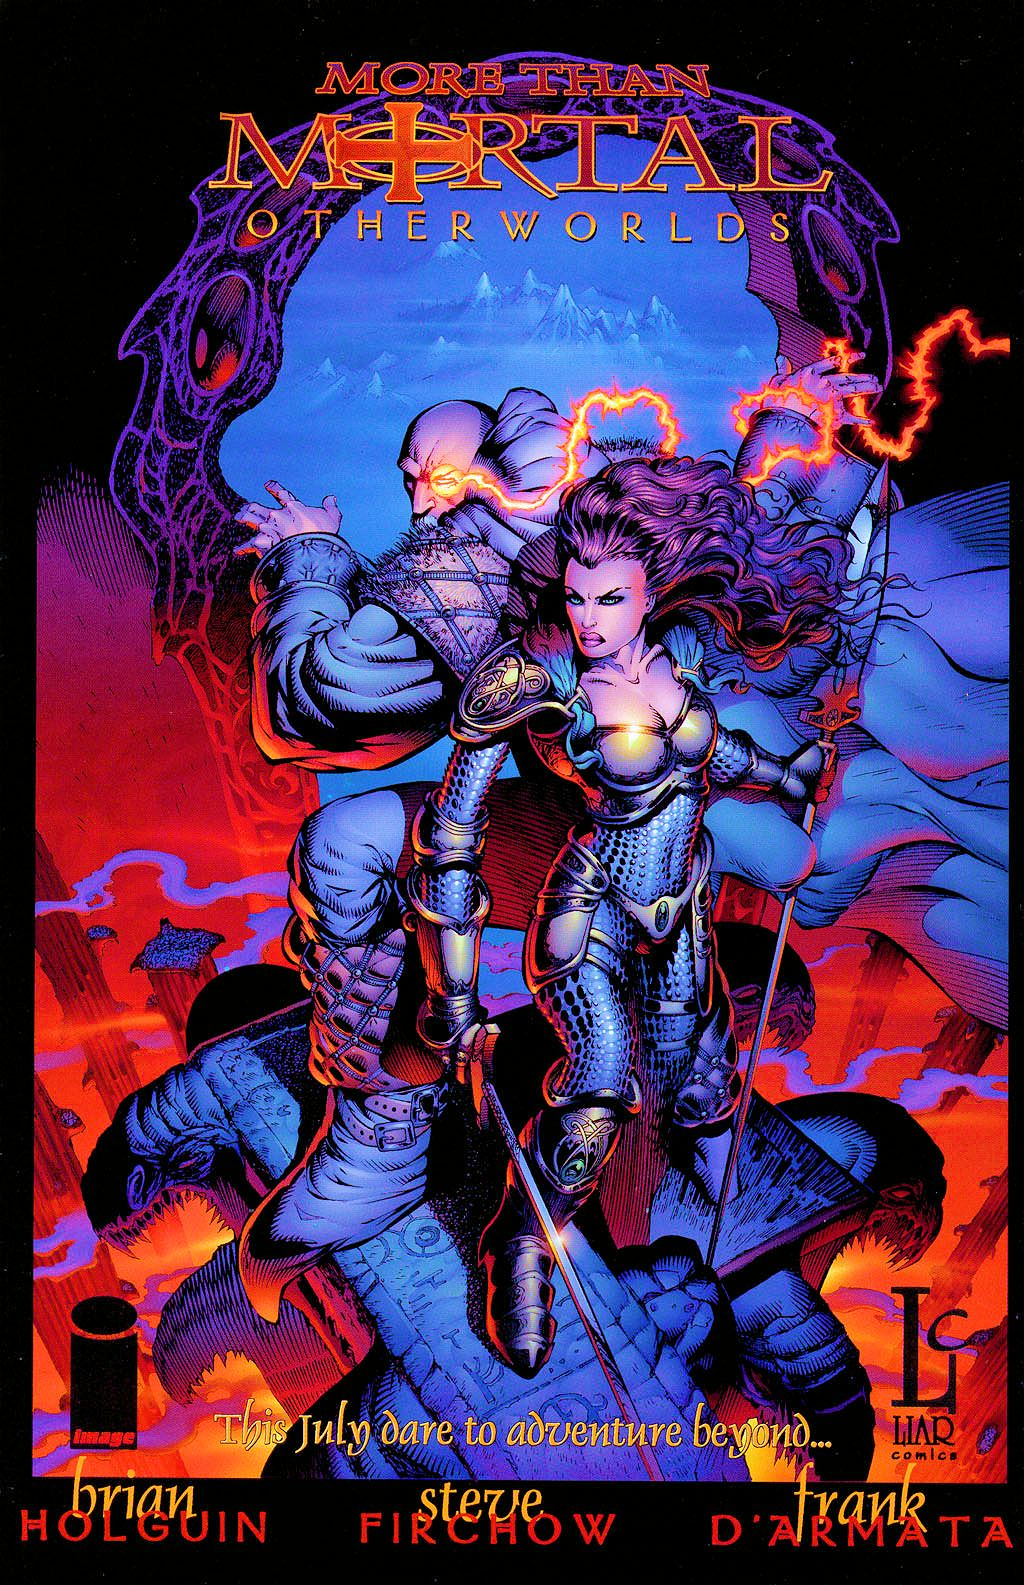 Read online Lady Pendragon / More Than Mortal comic -  Issue # _Preview - 20